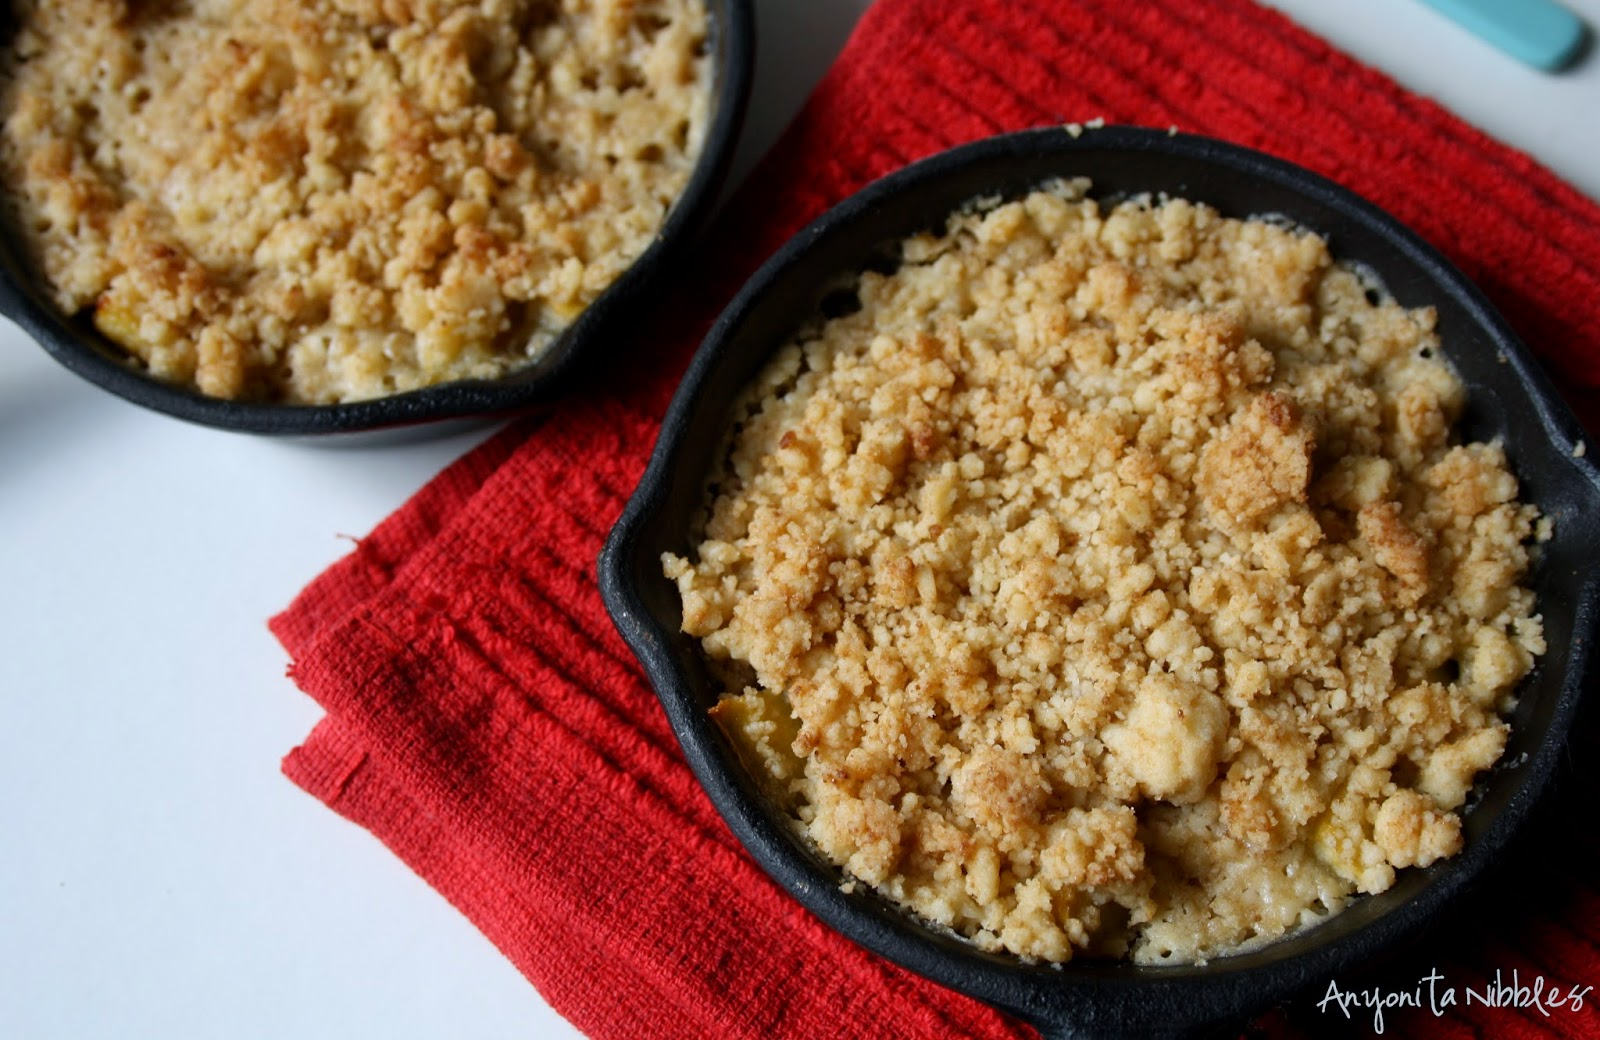 These #paleo and #glutenfree peach skillet crumbles are a perfect, healthy indulgent treat from Anyonita Nibbles